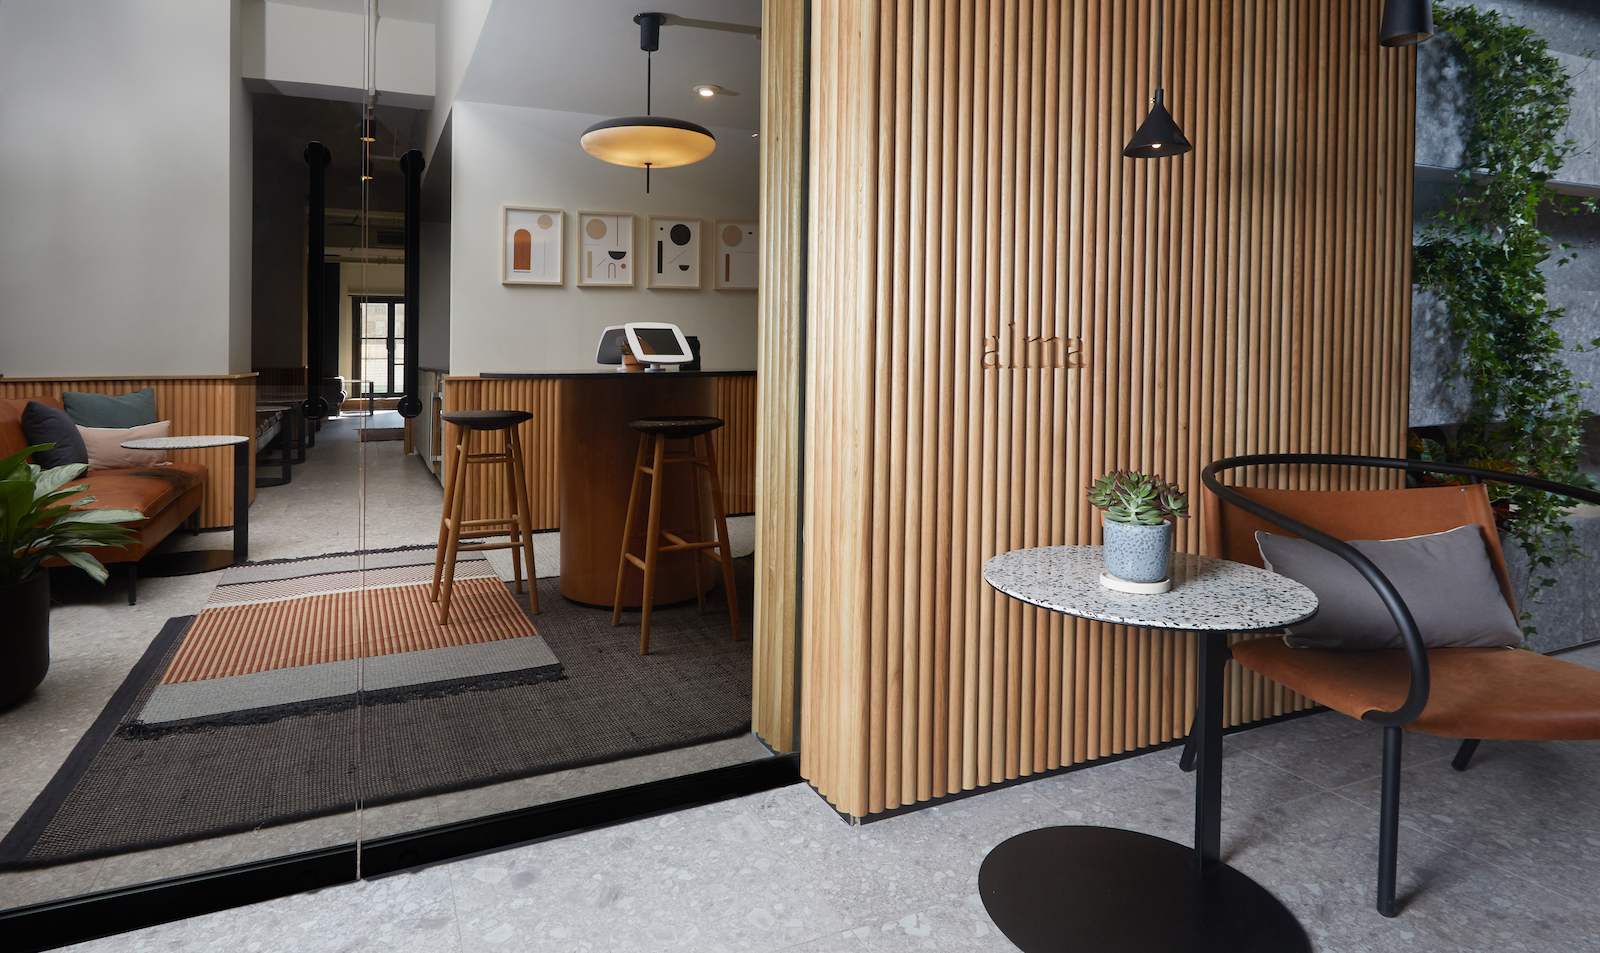 Alma, The WeWork Of Therapy, Opens Its First Stylish Care Center